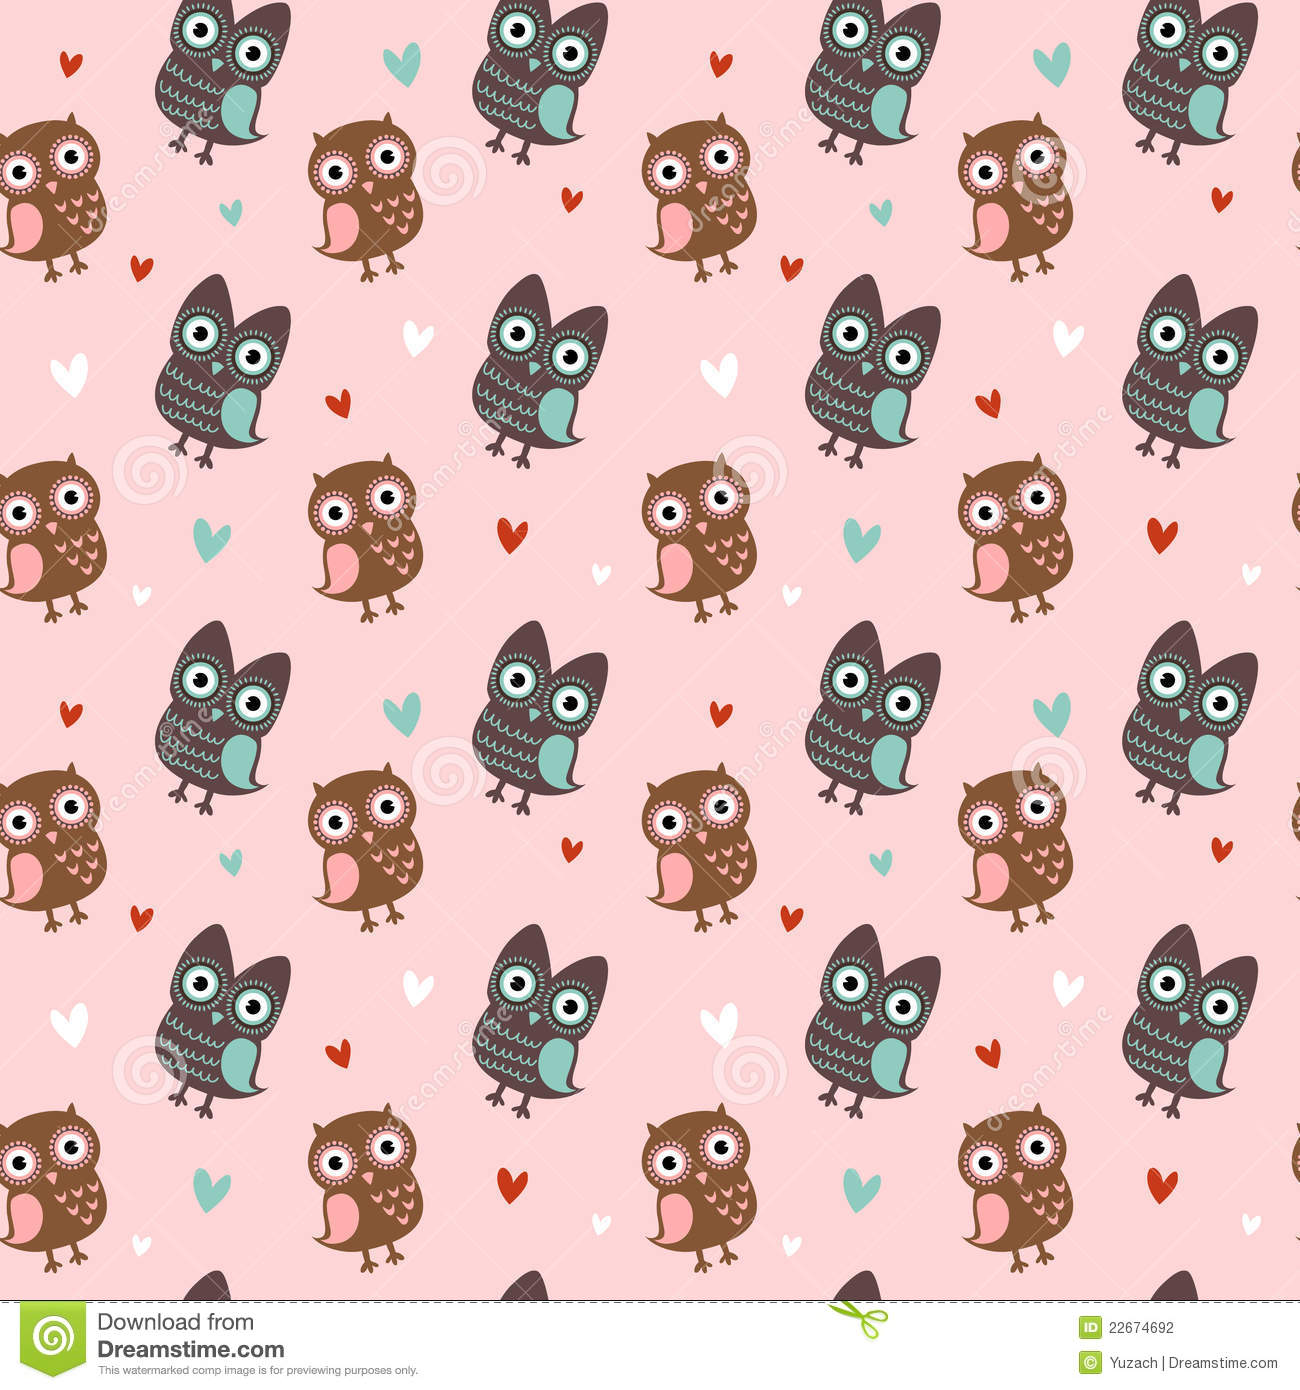 Cute Pink Owl Wallpaper With Owls And Hearts Stock